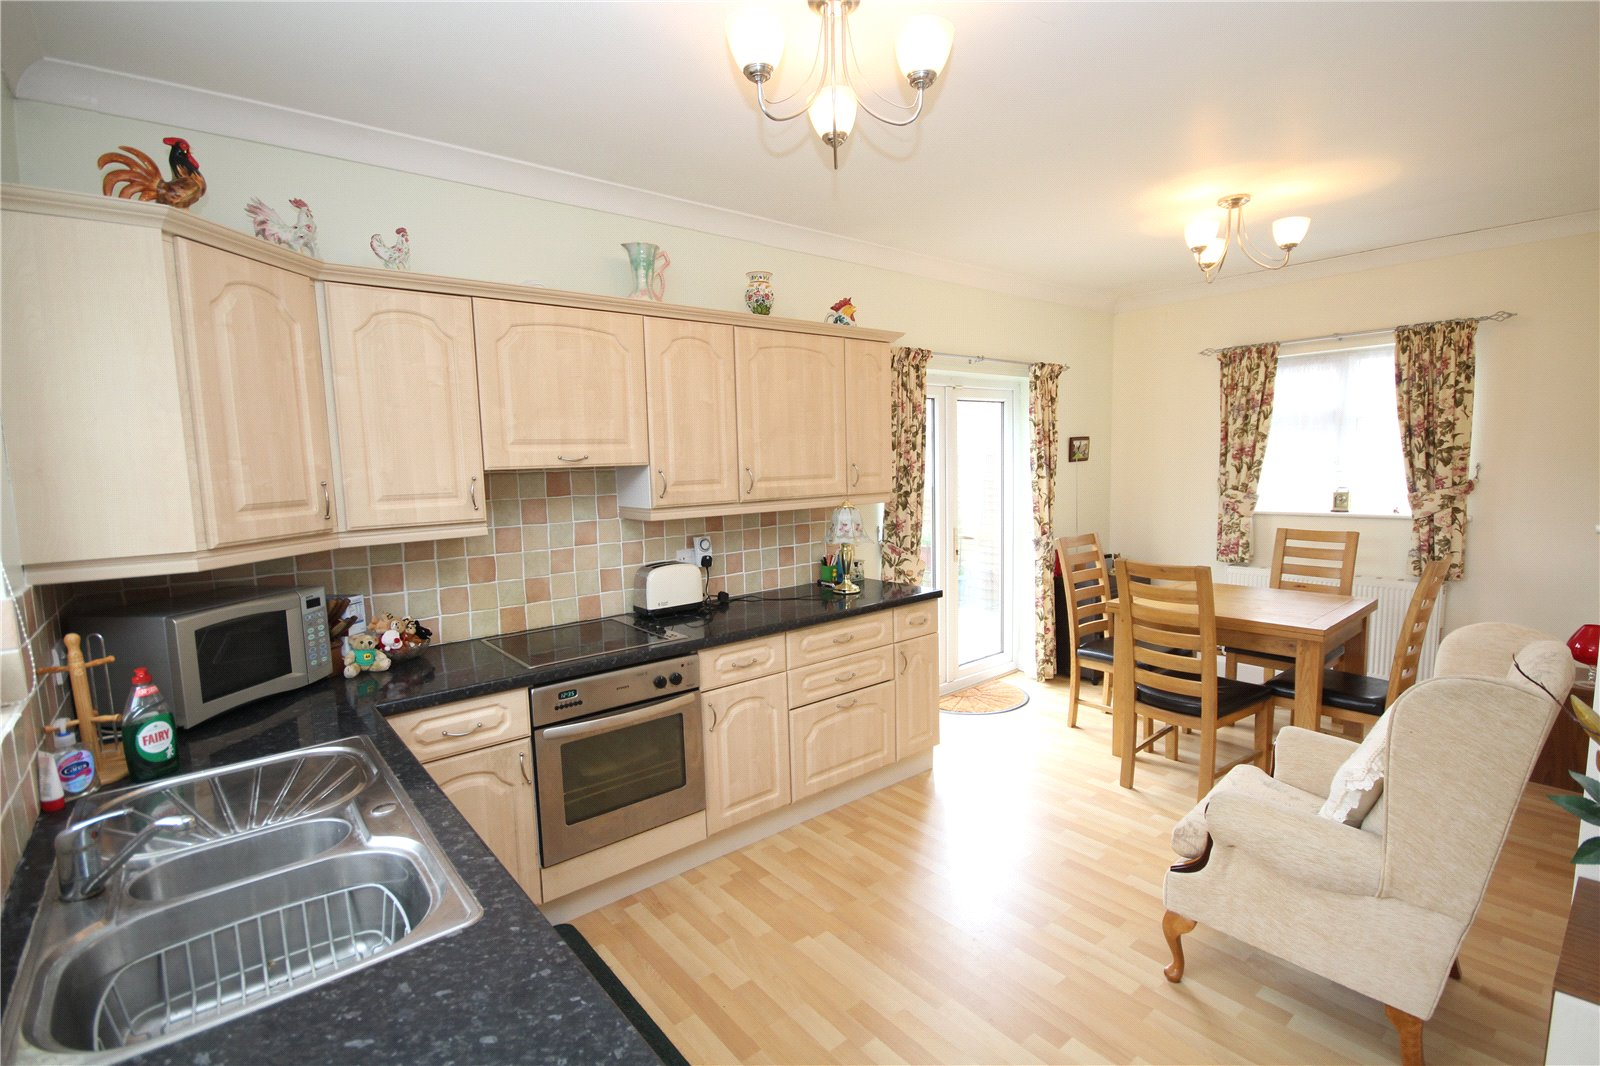 St. Michaels Road, South Welling, Kent, DA16